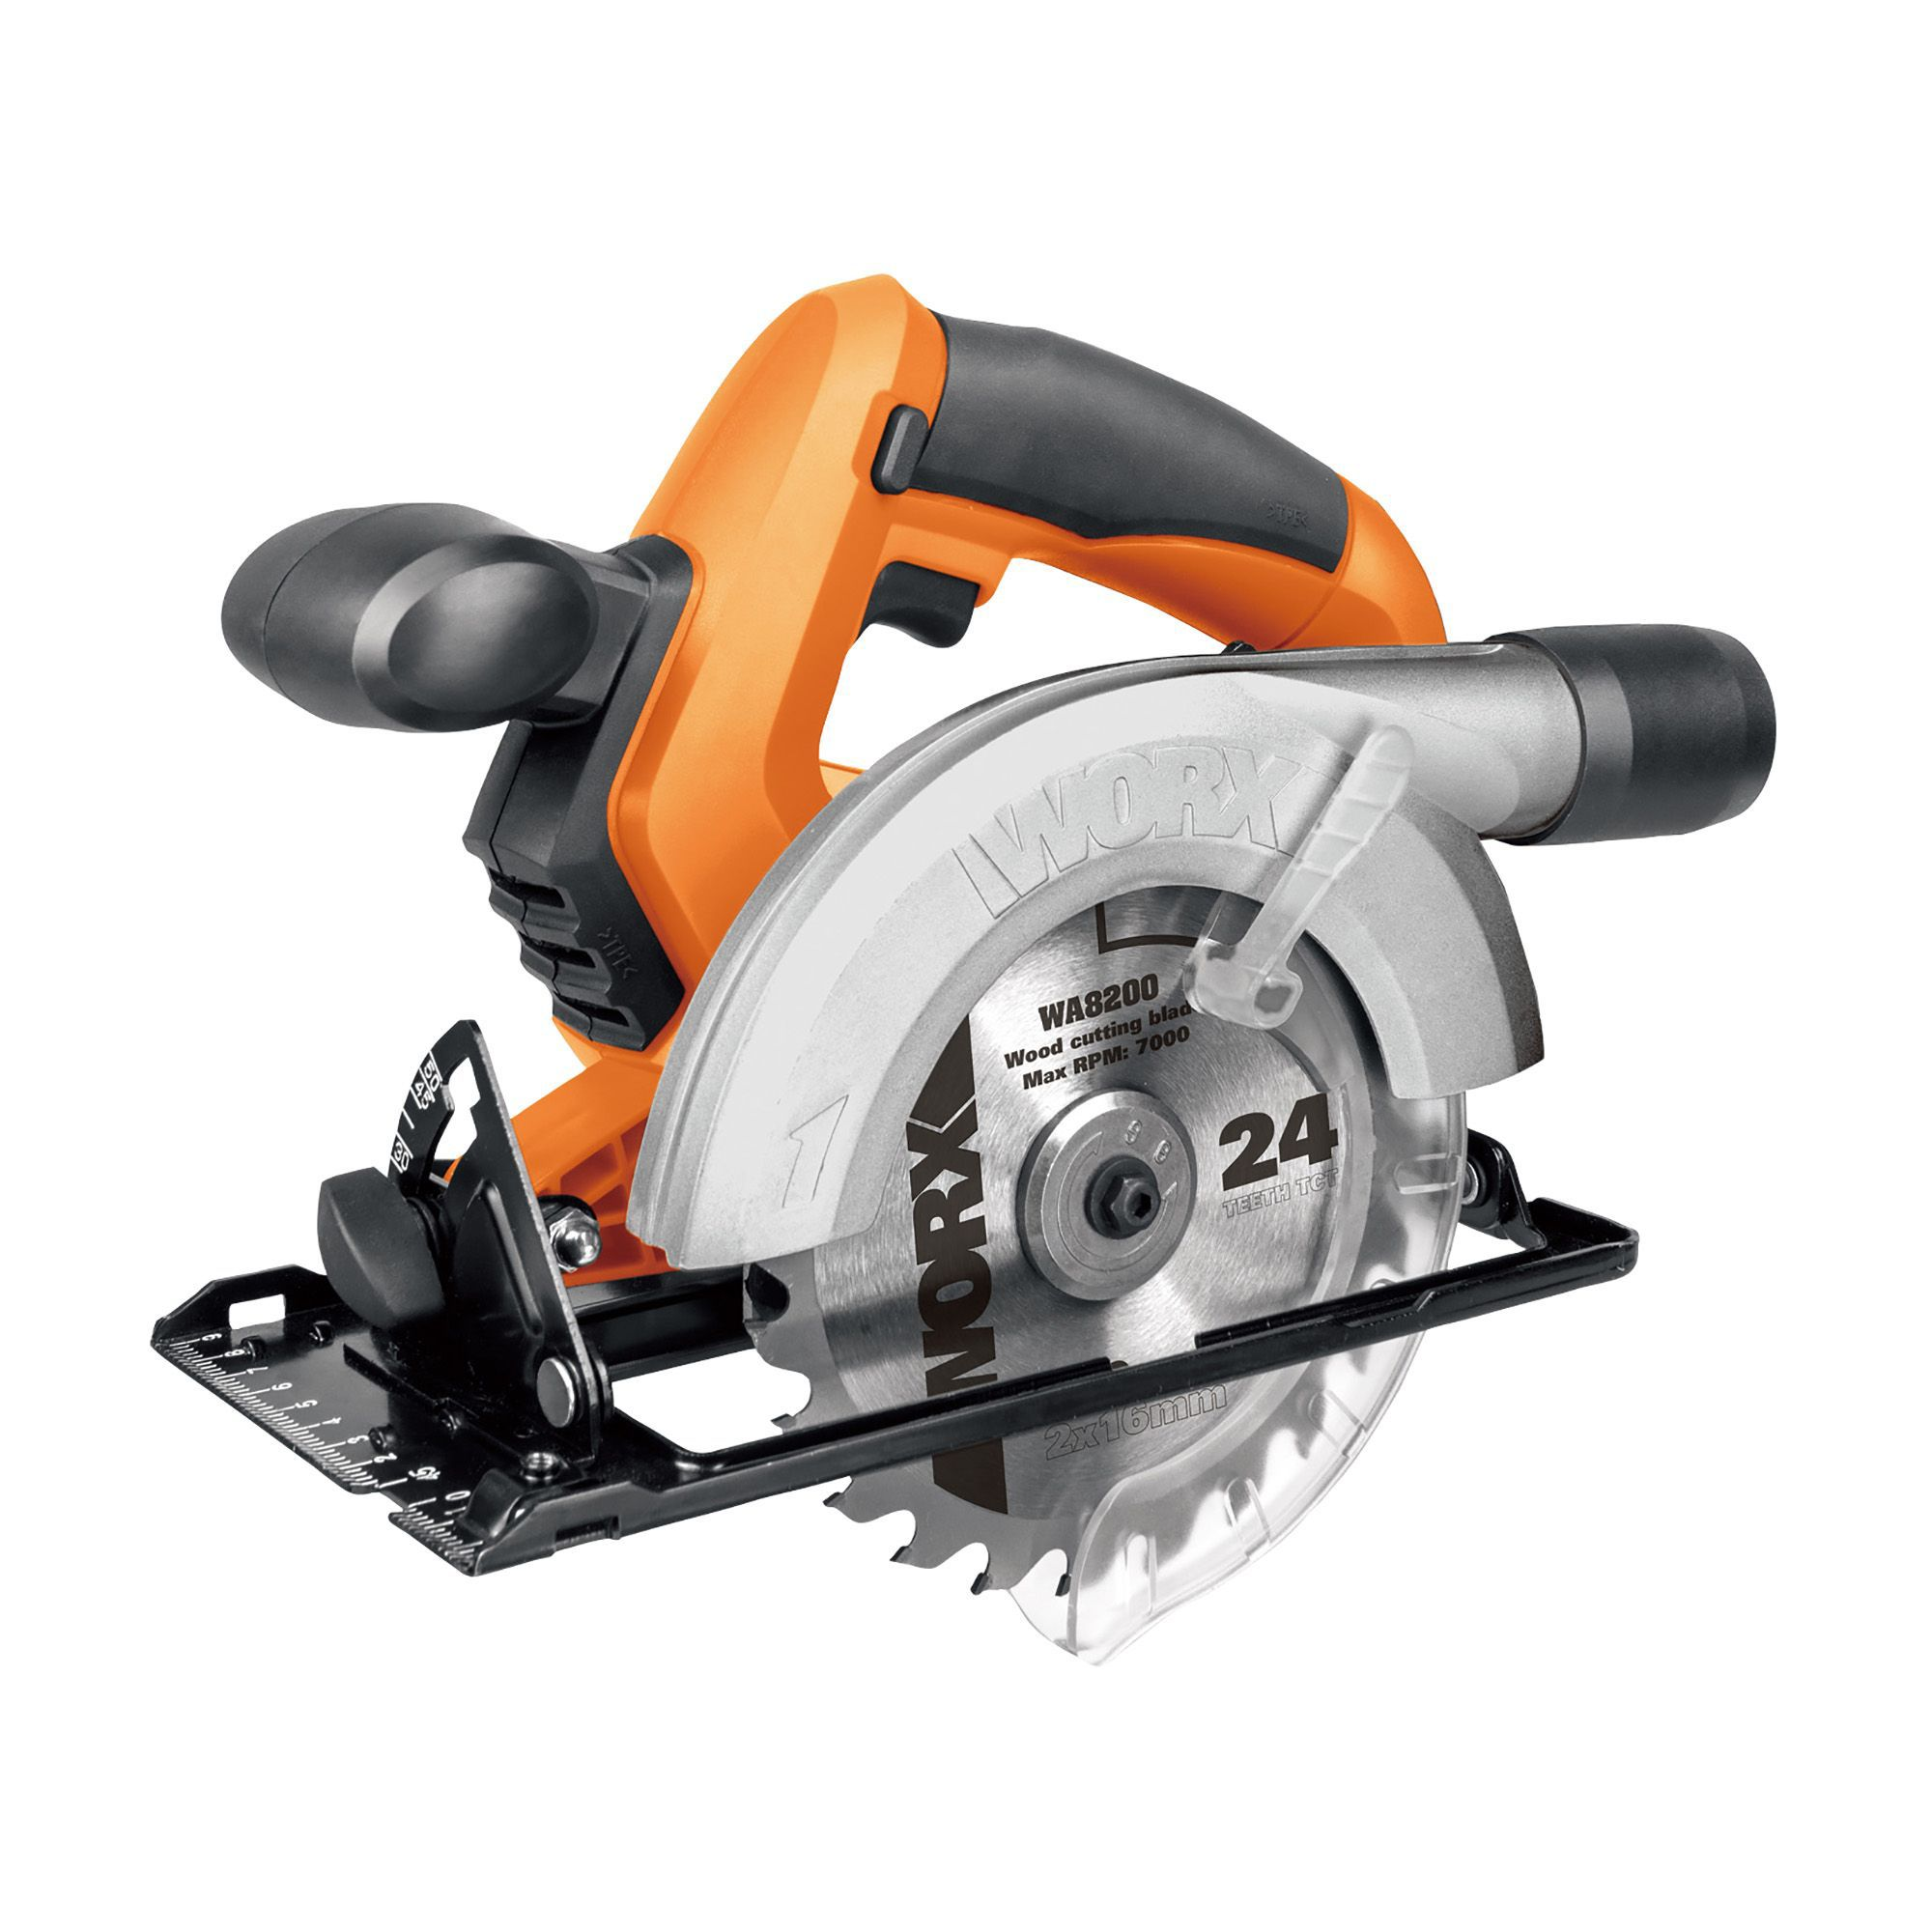 worx powershare 20v 150mm cordless circular saw wx529 9 bare departments tradepoint. Black Bedroom Furniture Sets. Home Design Ideas